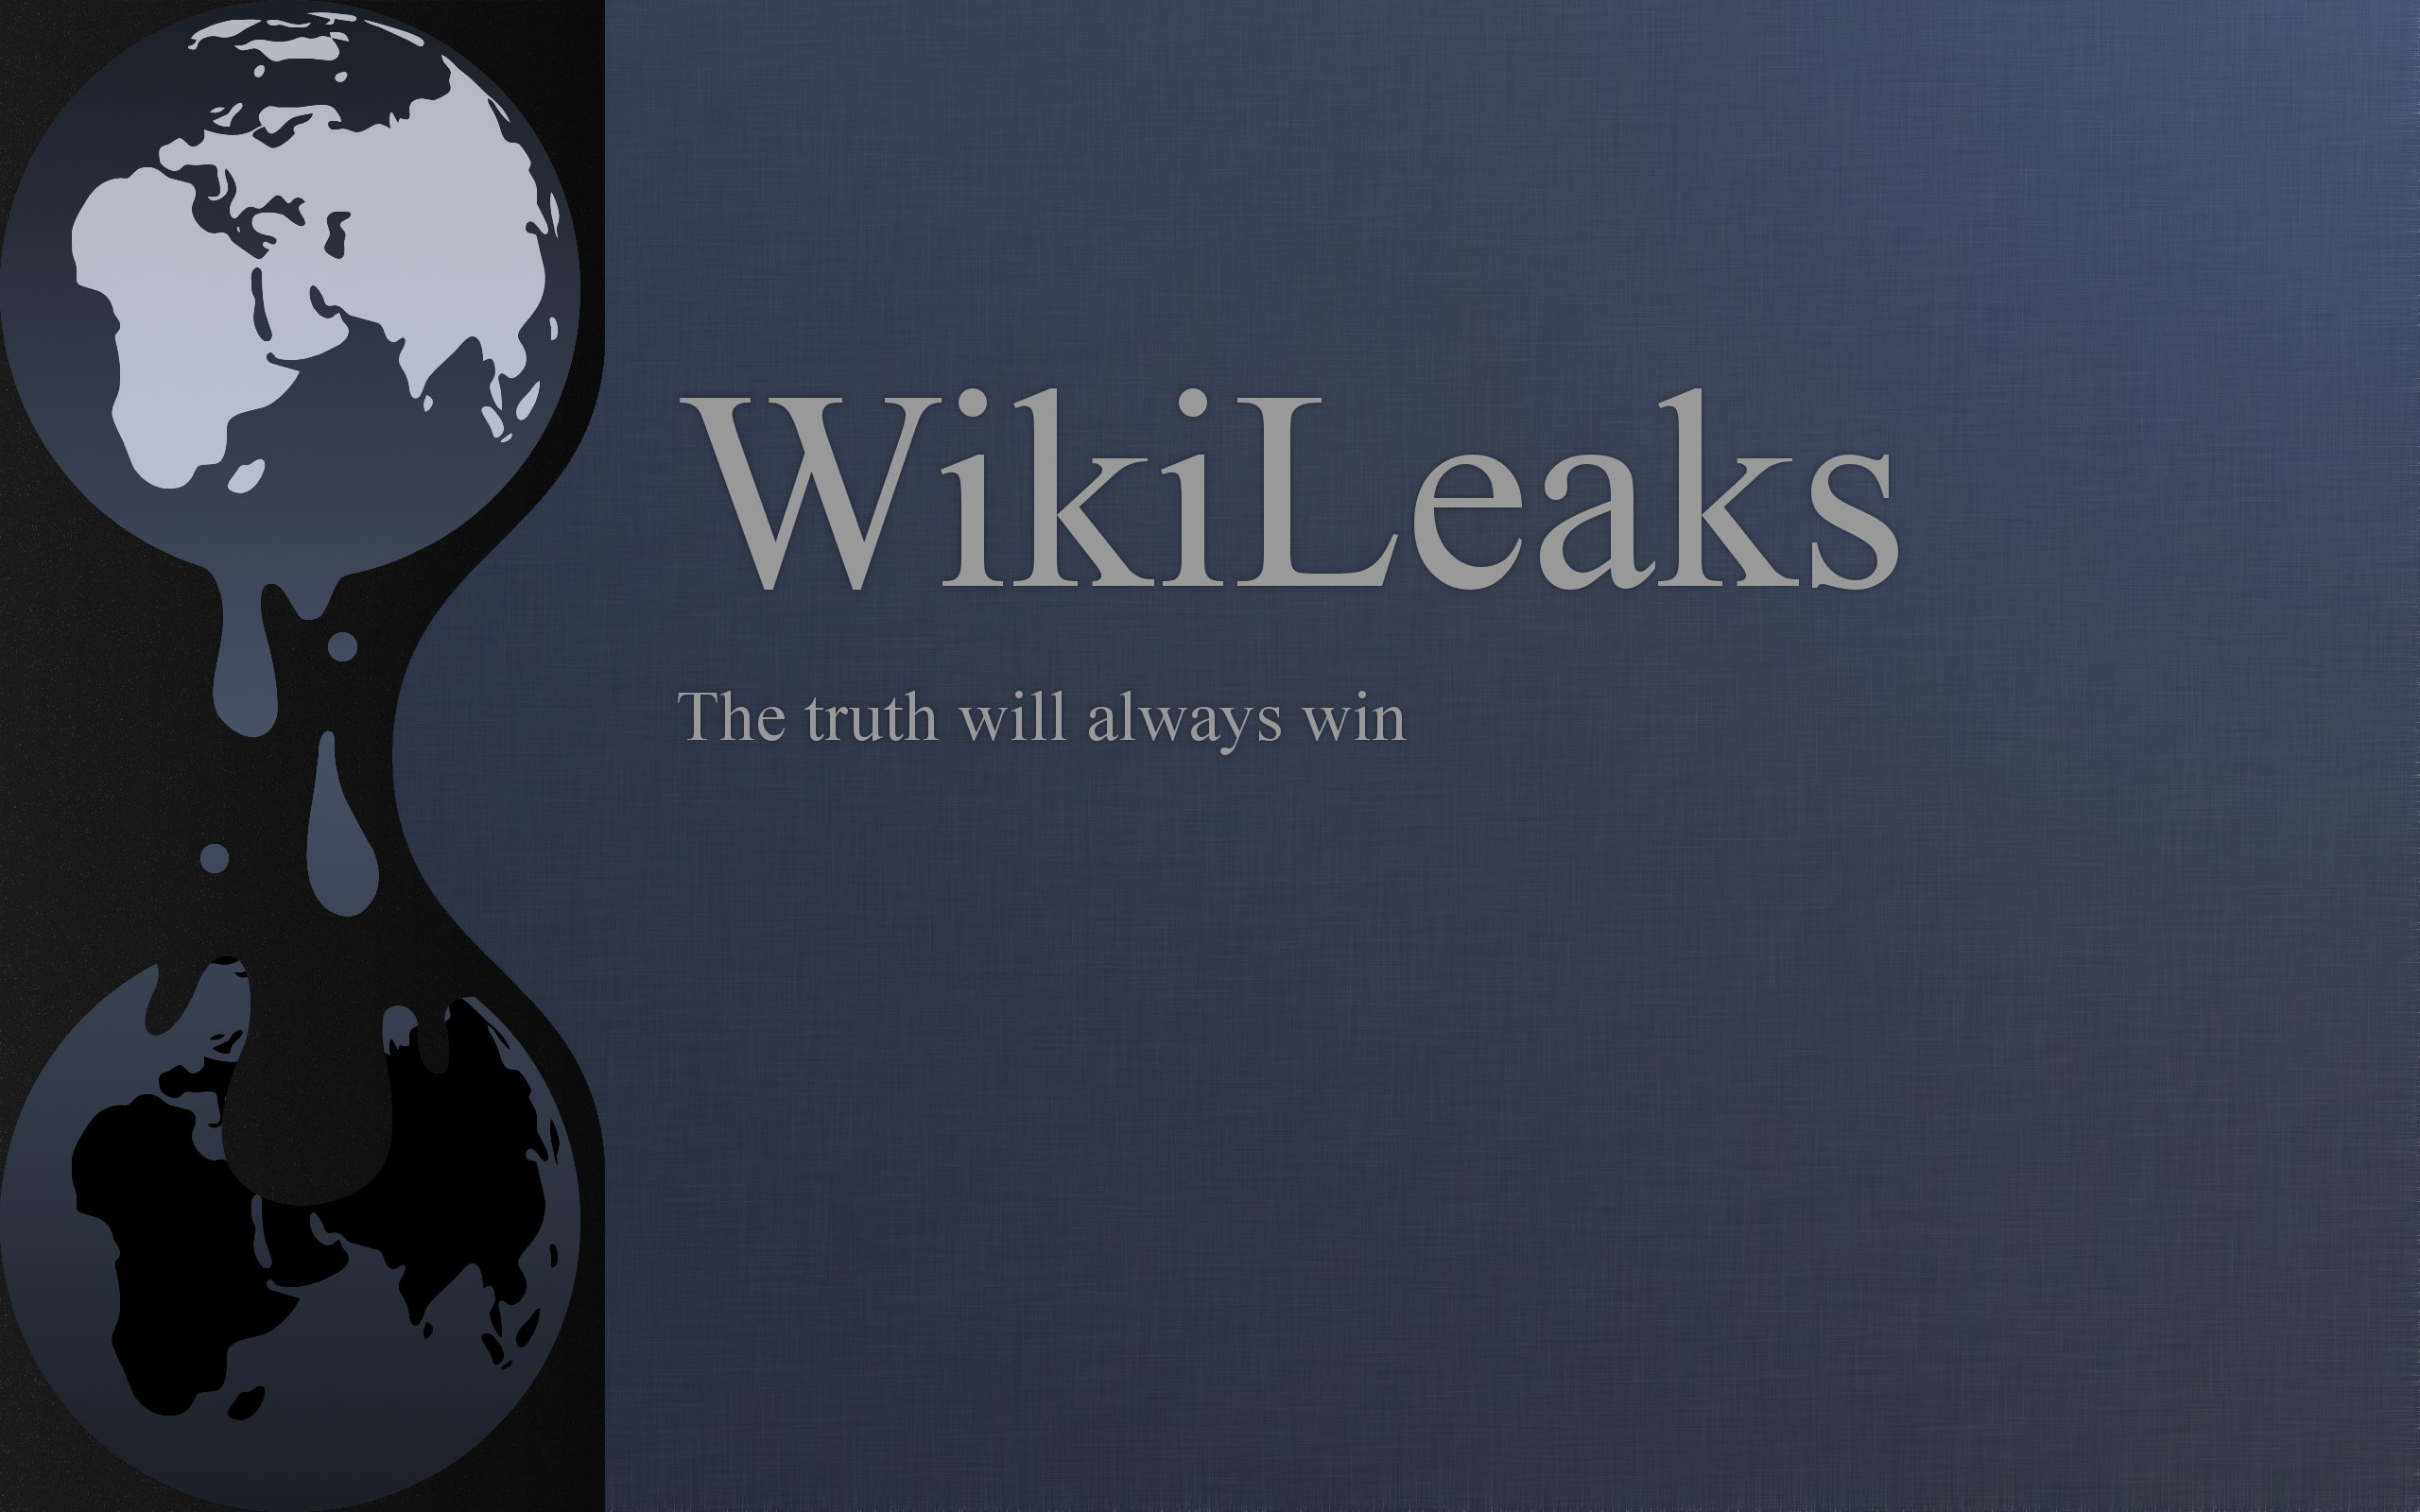 Wikileaks art found at Devian Art